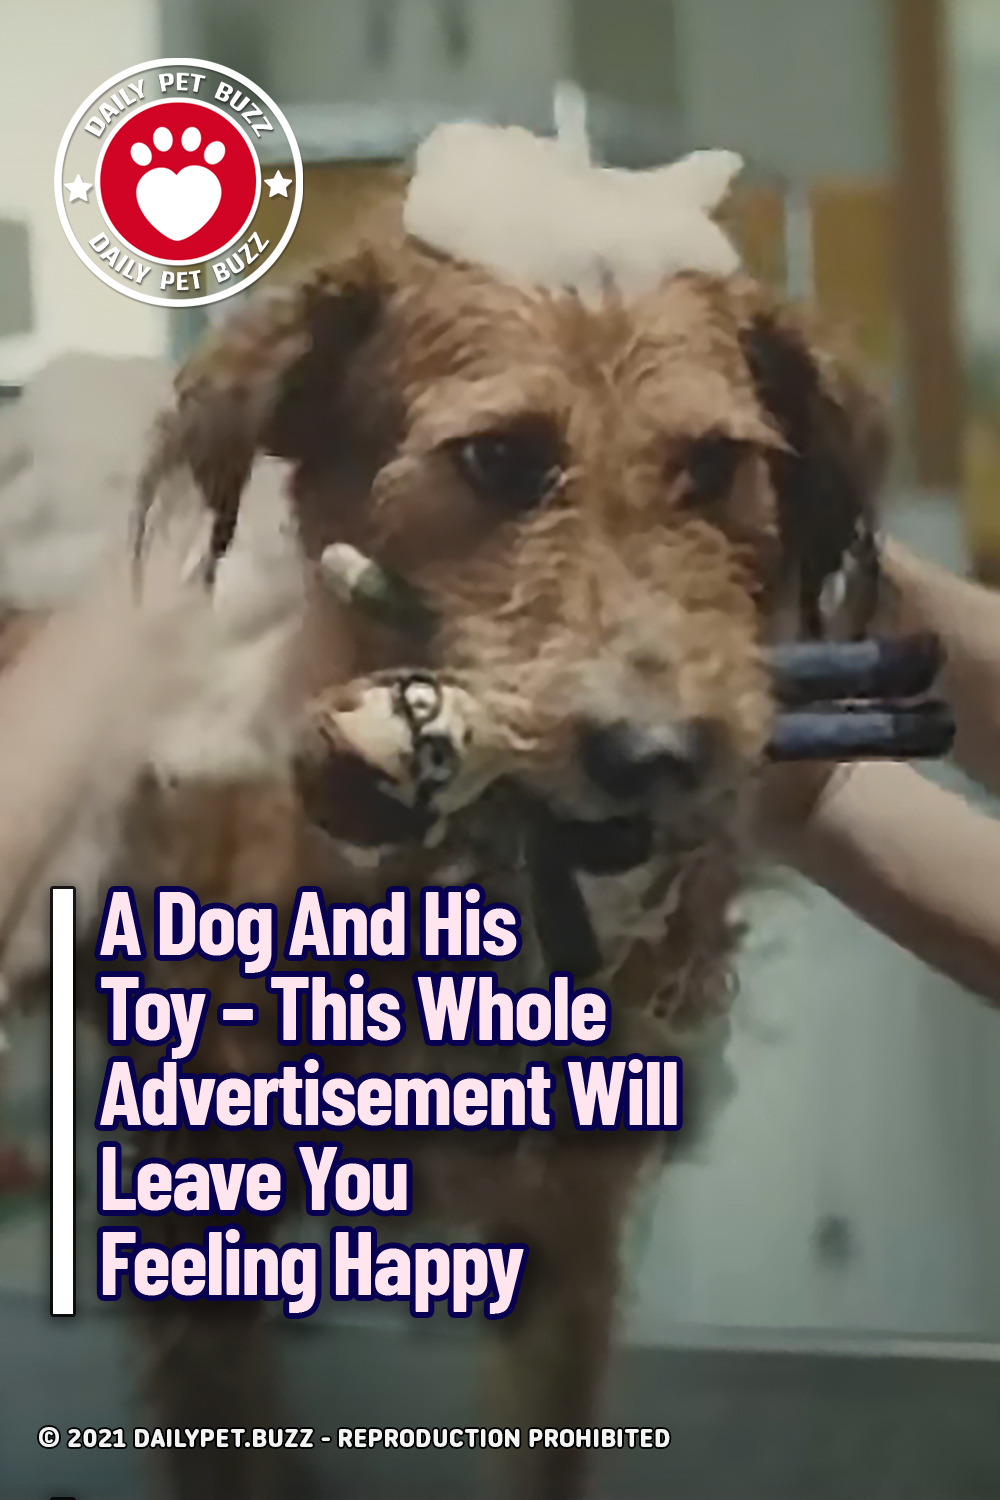 A Dog And His Toy – This Whole Advertisement Will Leave You Feeling Happy